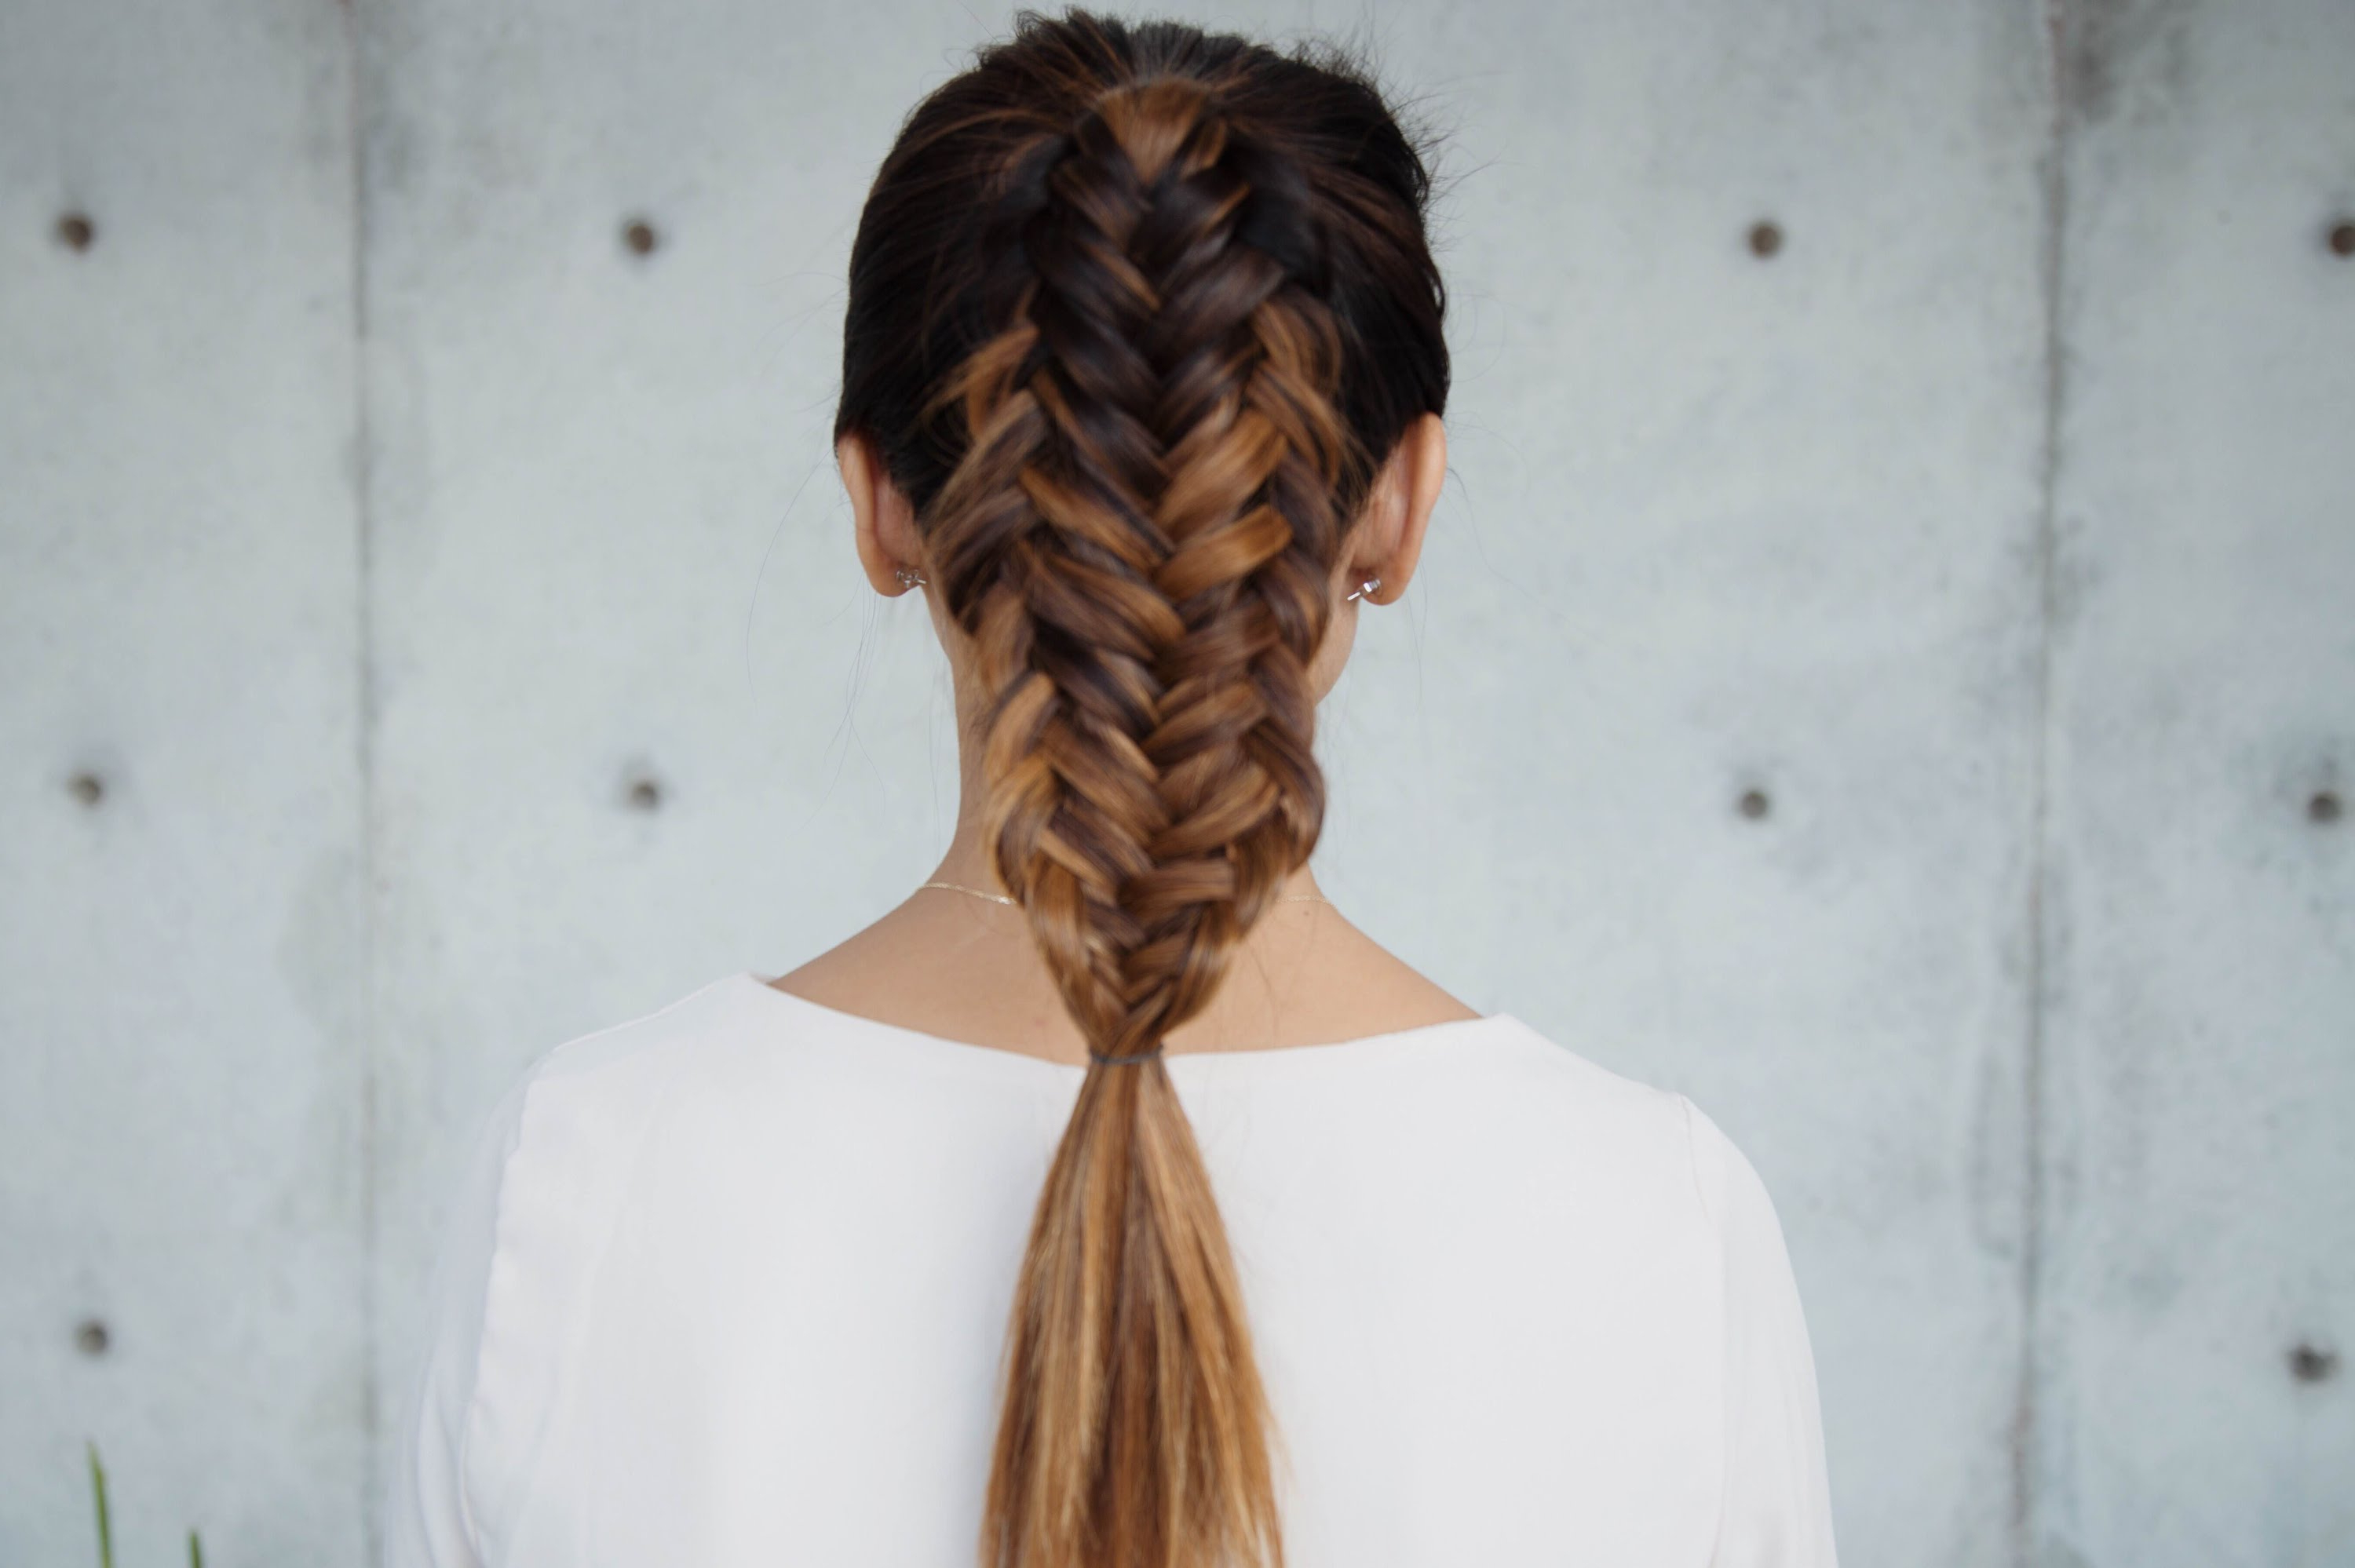 Recent Wrapping Fishtail Braided Hairstyles For Fishtail Braid: Top 25 Beautiful Fishtail Braids (View 14 of 20)